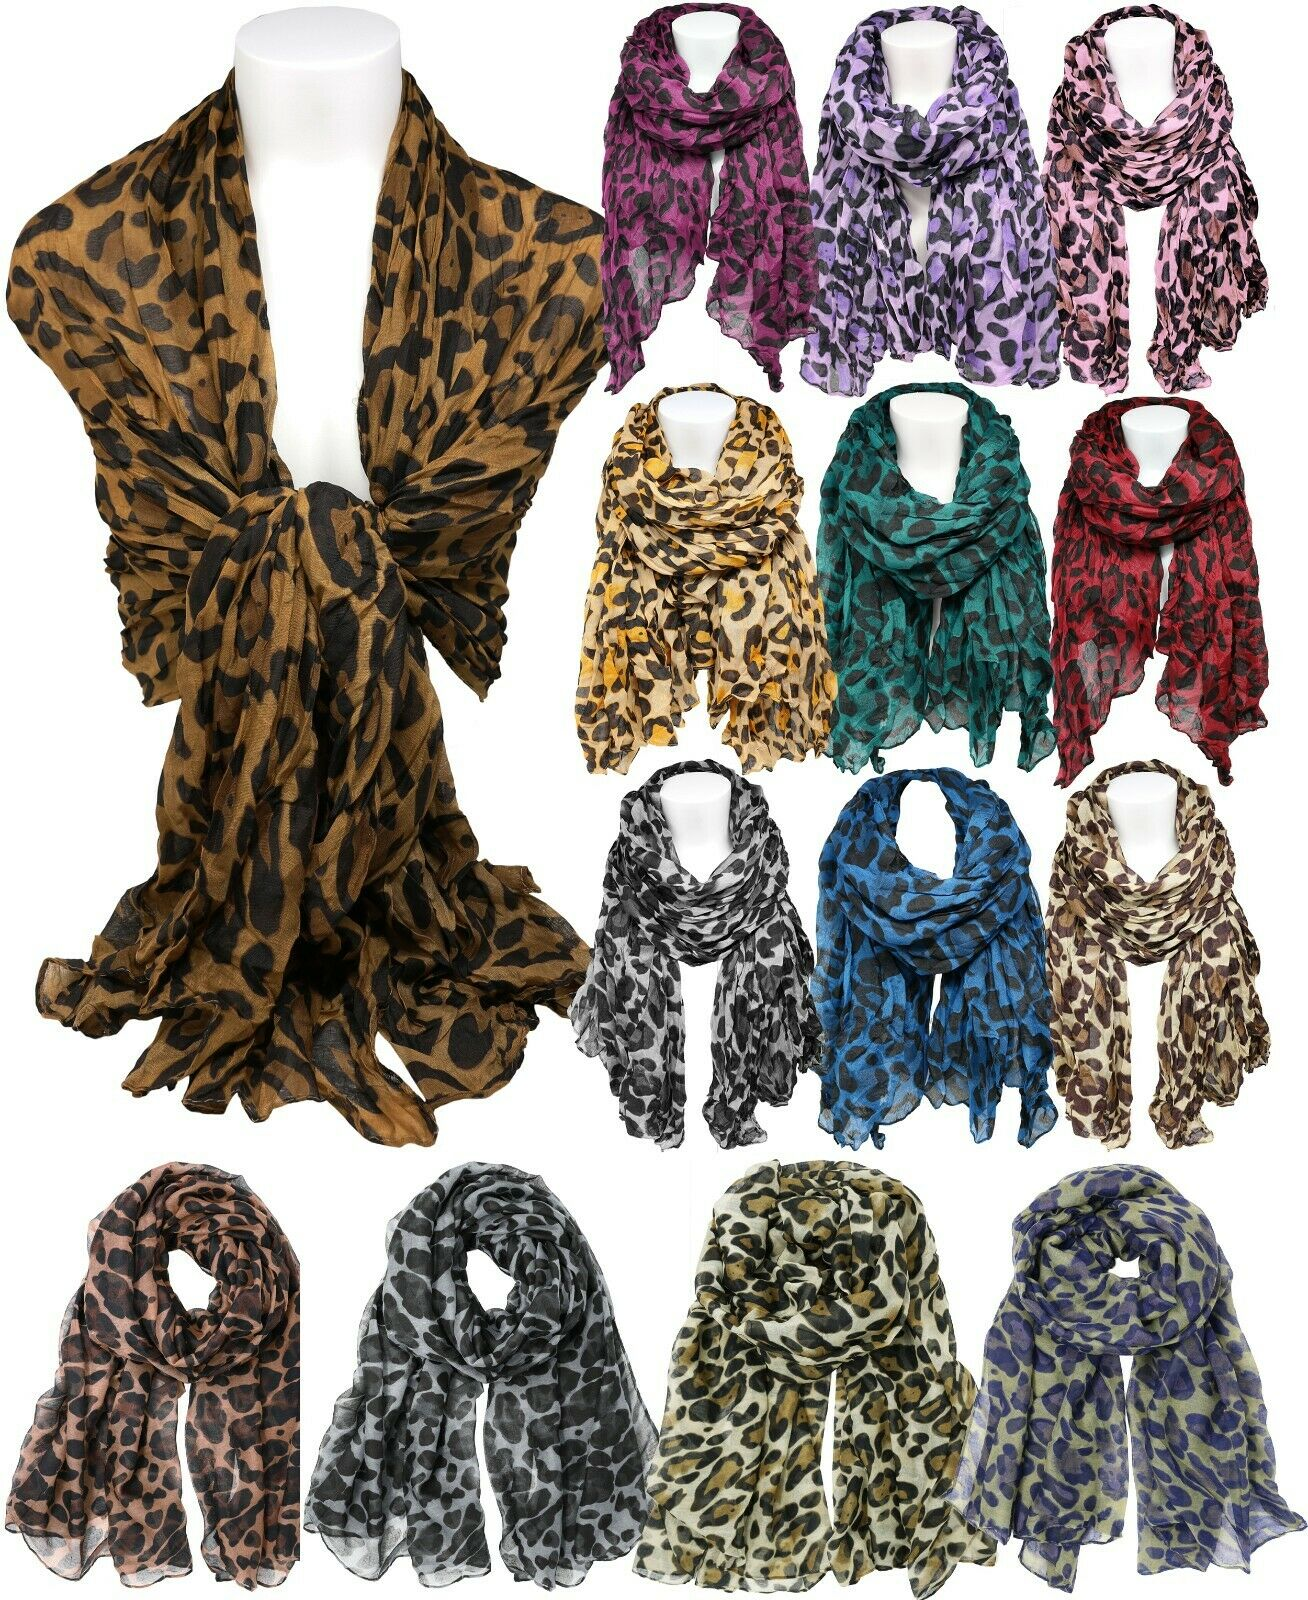 Classic Leopard Print Scarf Clothing, Shoes & Accessories